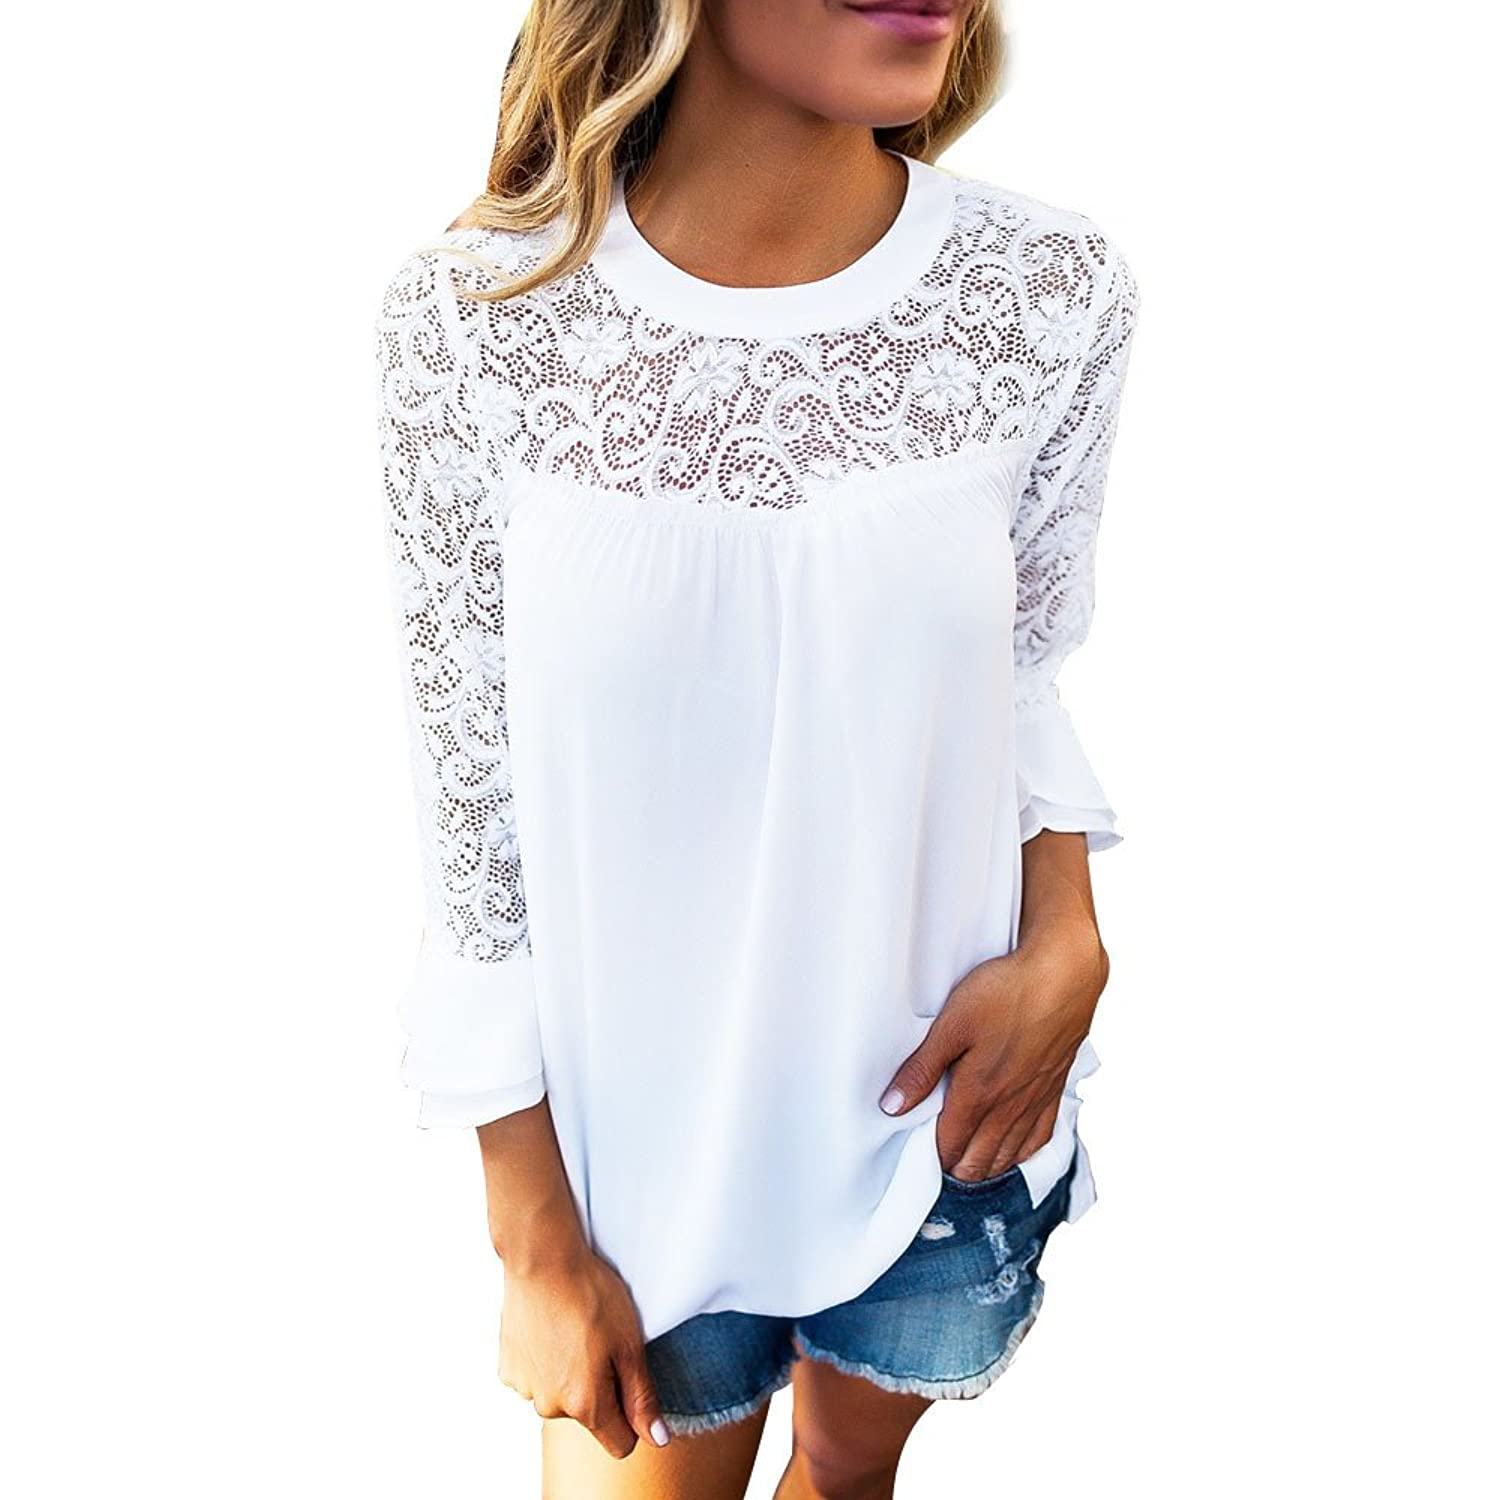 2018 Women's 3/4 Sleeve Frill Tops Embroidery Lace Shirt Blouse T-Shirt by E-Scenery